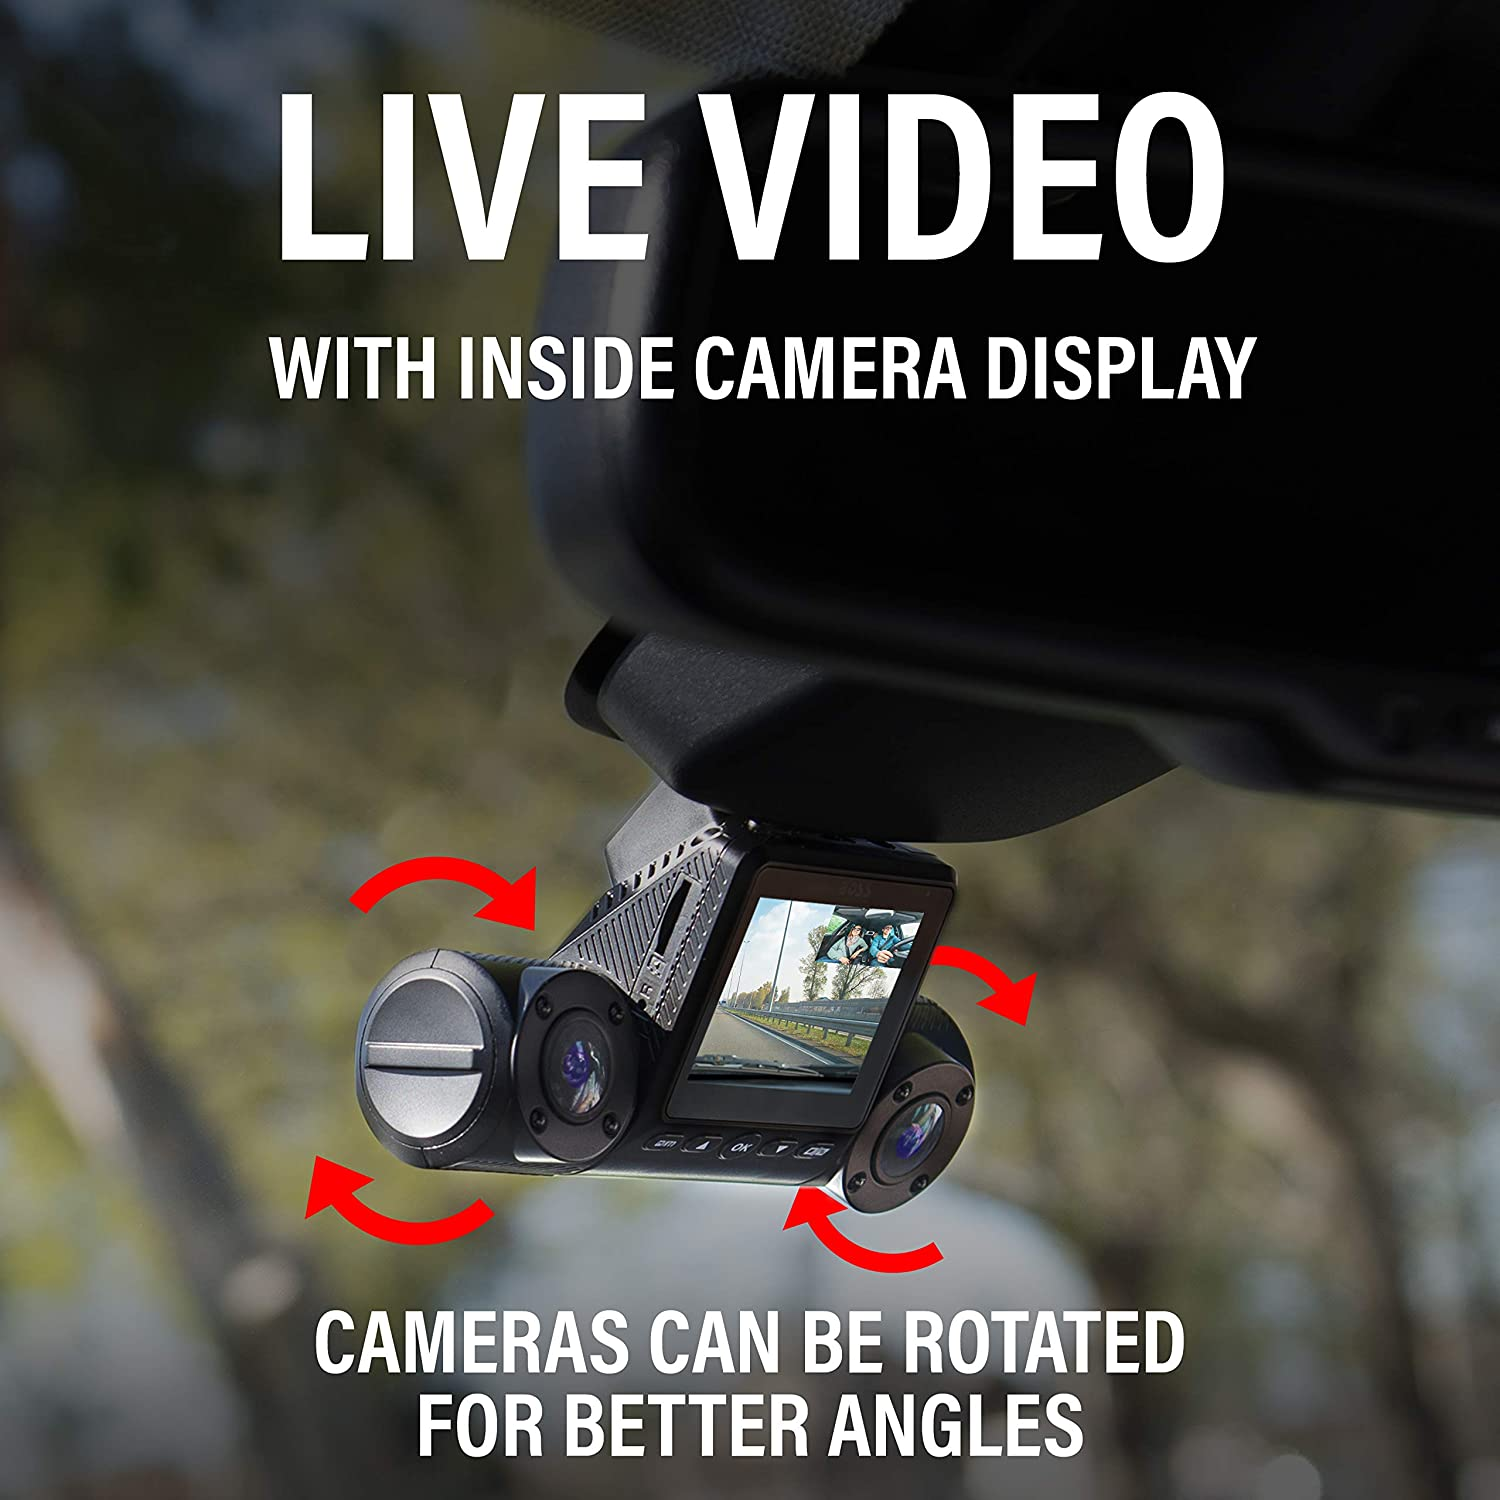 WDR Night Vision 2 Inch High Definition LCD Auto Loop Recording Image Sensor GPS Logger Wi-Fi BOSS Audio Systems BCAMW80 Car Dash Cam Motion Detection 1080P HD Front-Inside Recording